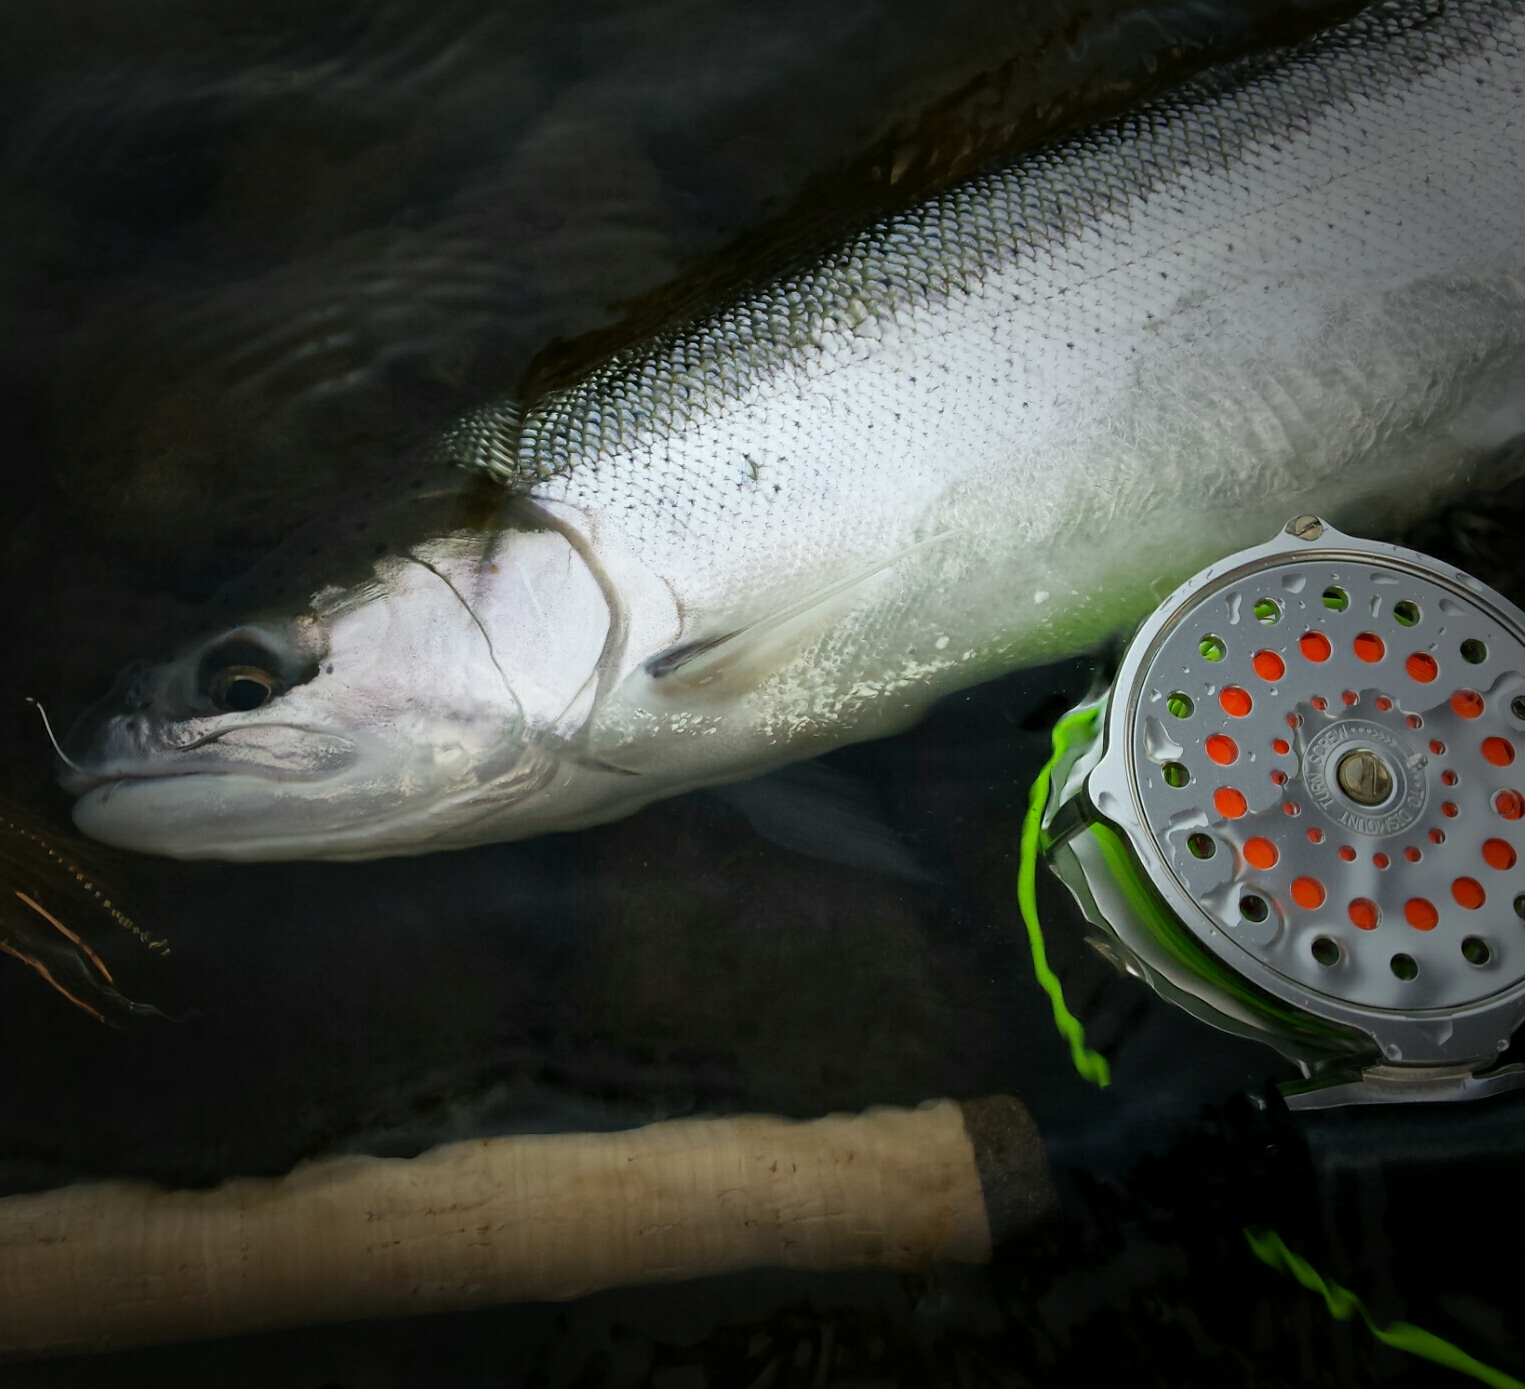 Gorge fly shop blog going old school click pawl reels for Fishing reel ringtone